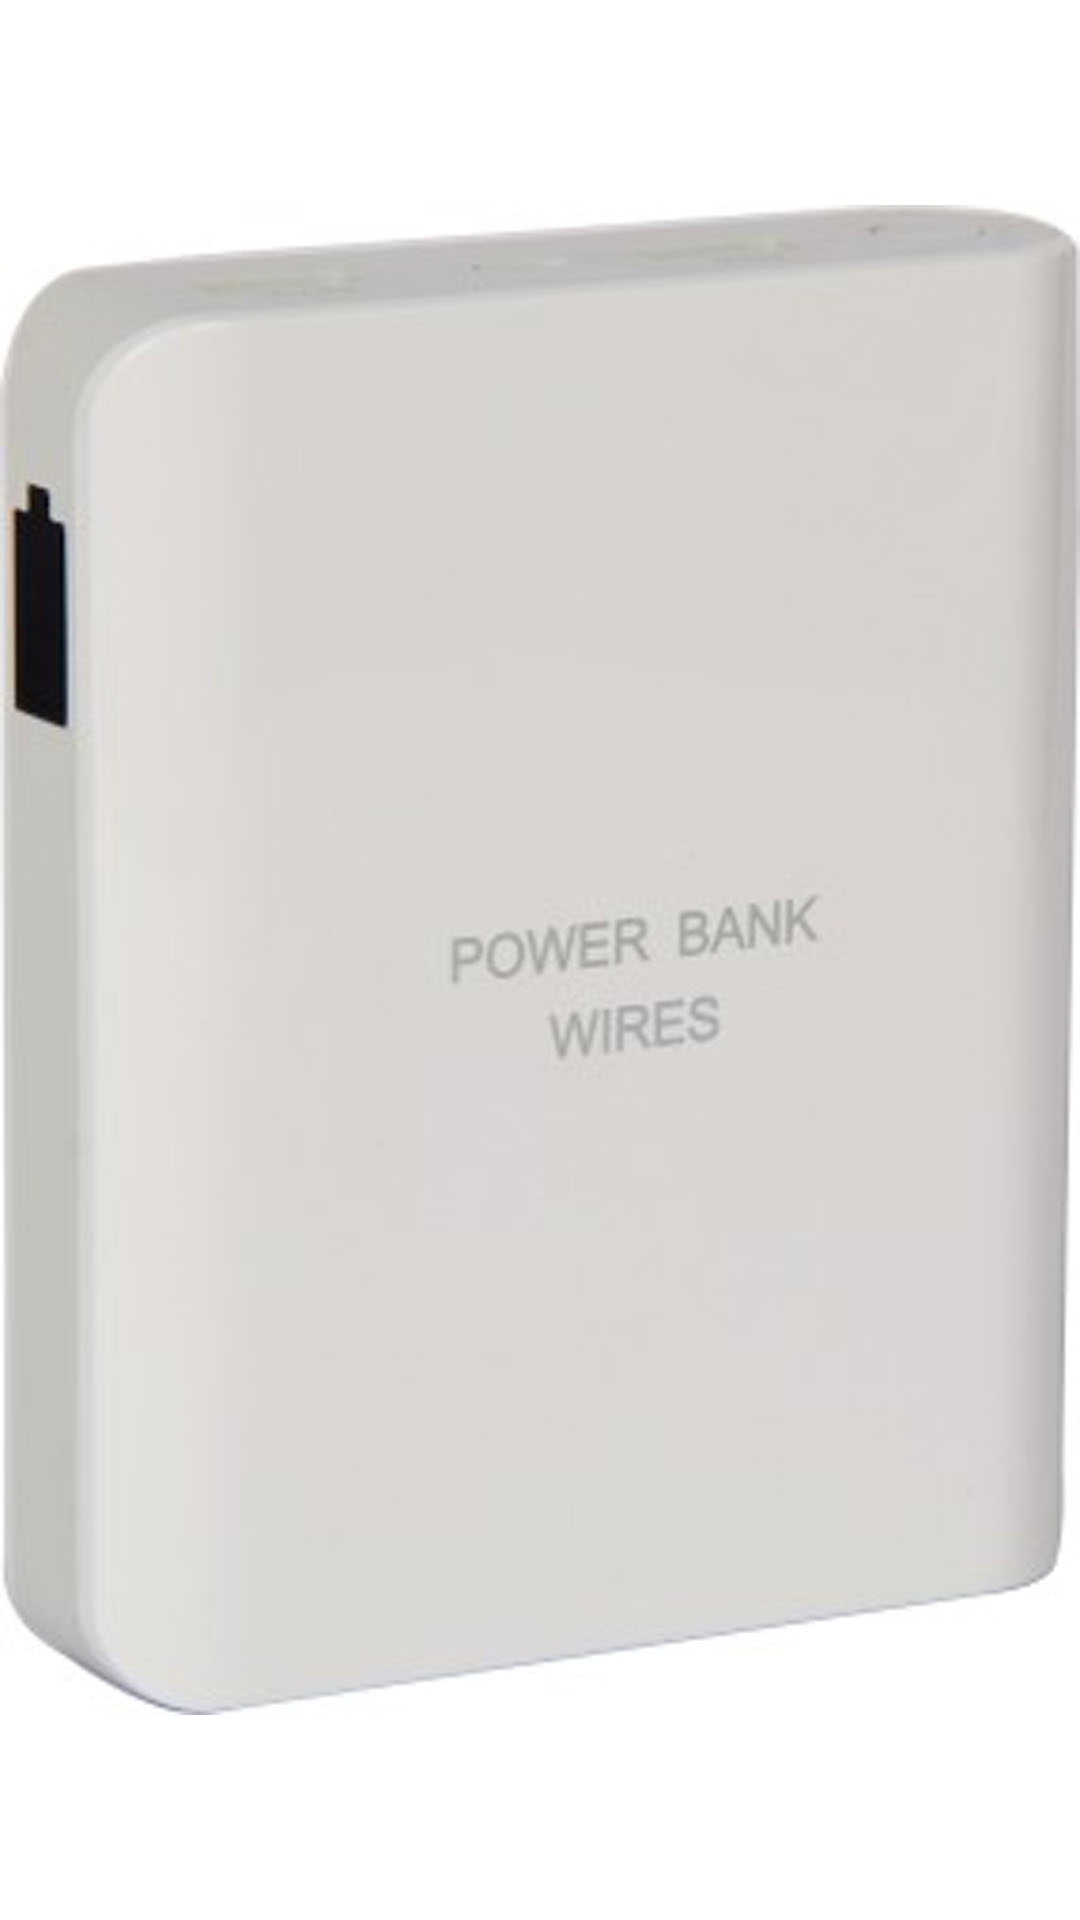 Wires AL-202 10000mAh Power Bank